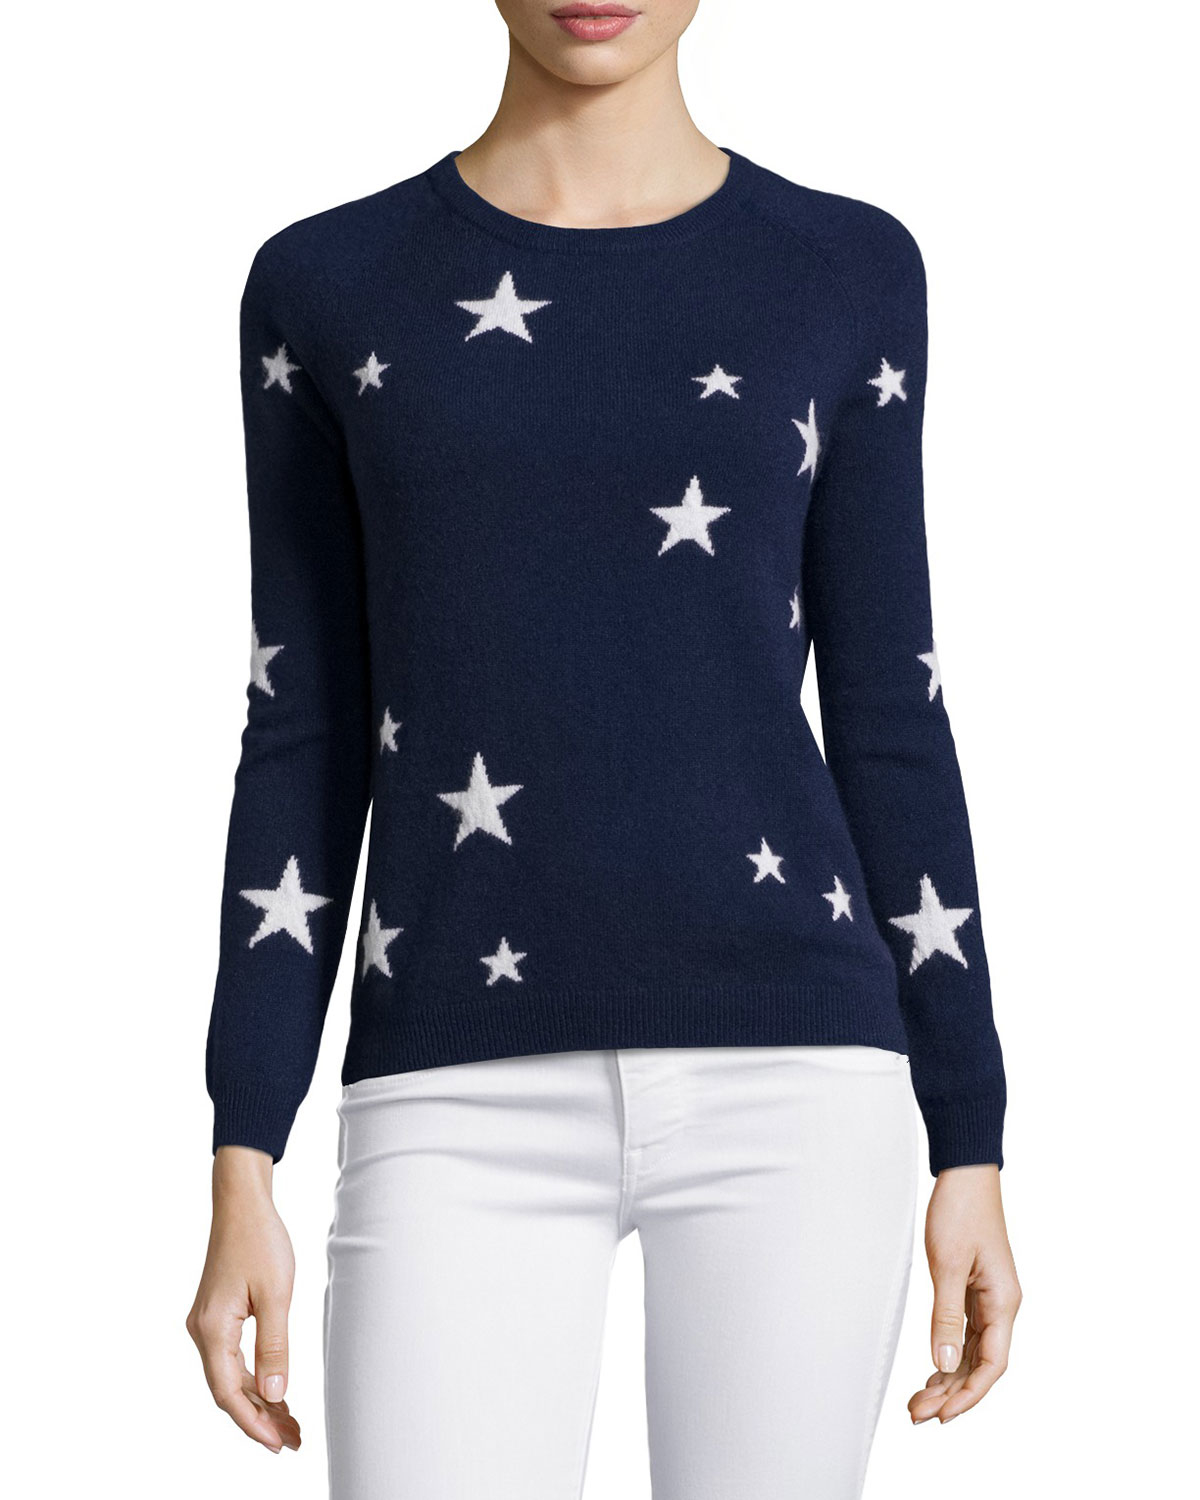 Neiman marcus Cashmere Star-print Sweater in Blue | Lyst